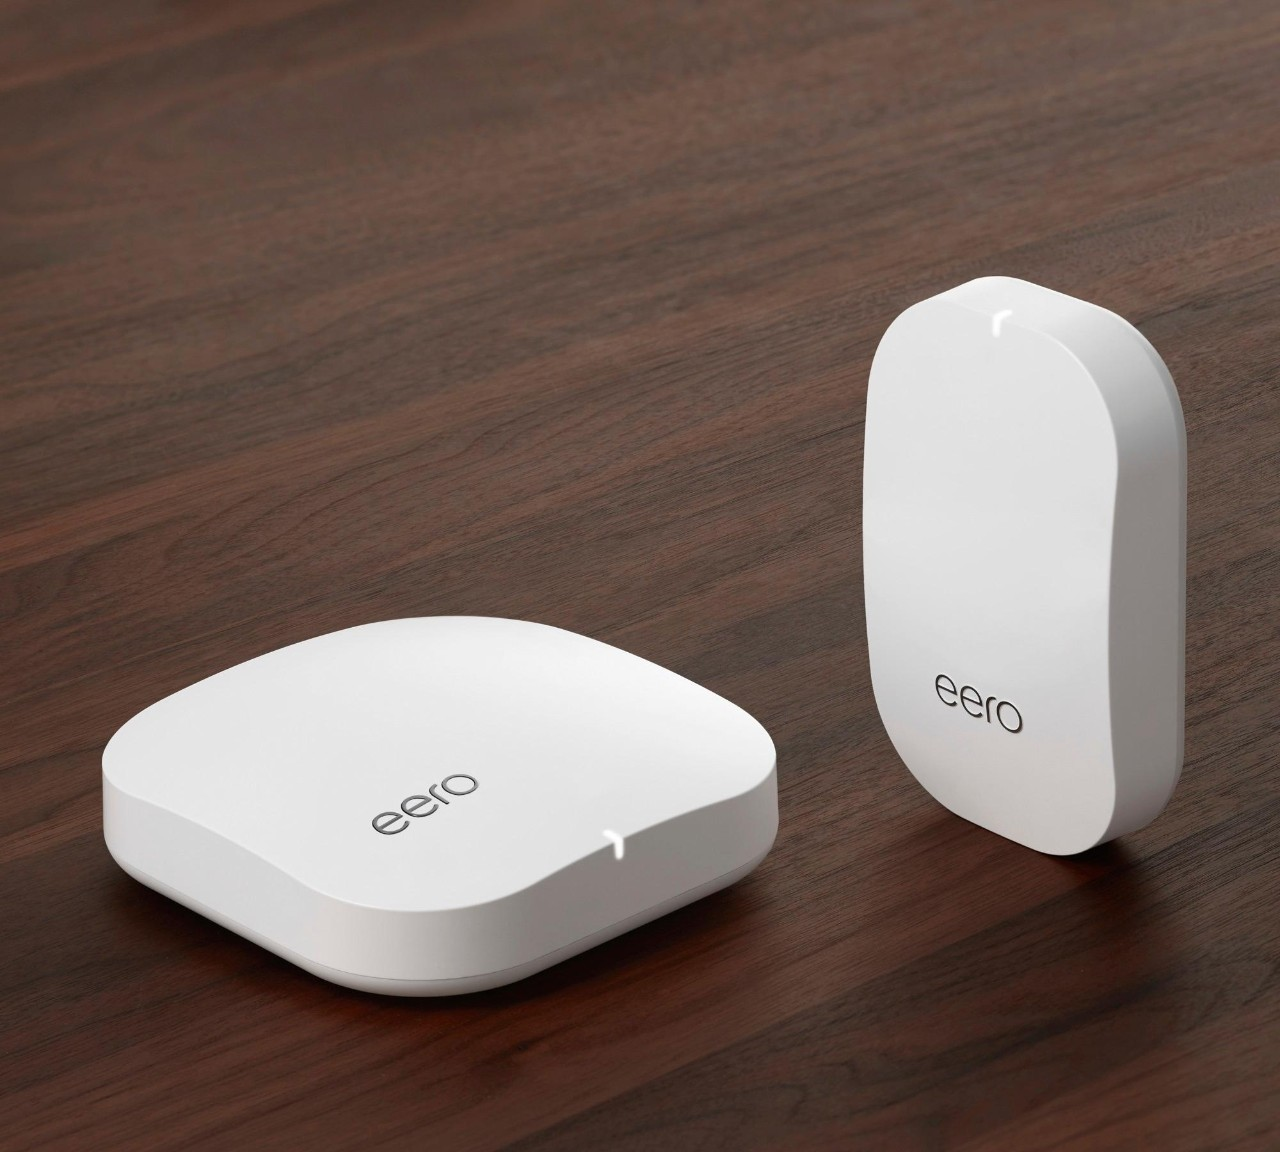 @BestBuy has Stylish Eero Wi-Fi system #ad